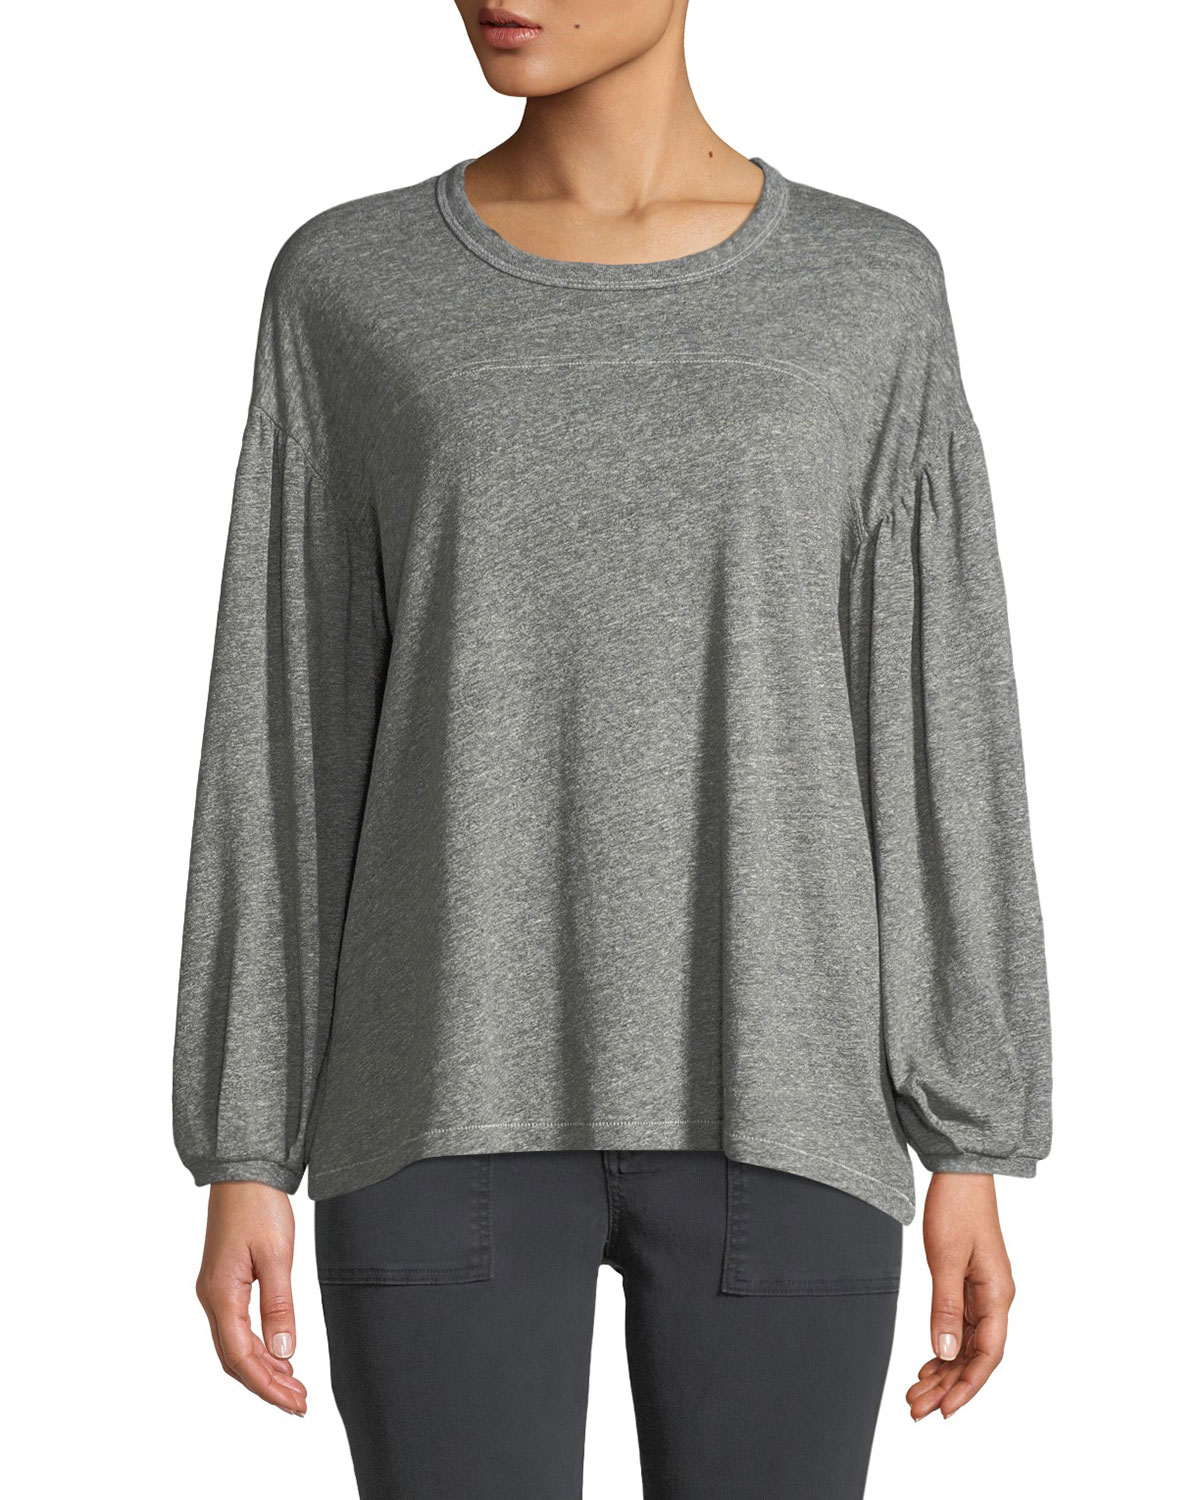 THE GREAT The Curve Blouson-Sleeve Crewneck Tee in Heather Gray